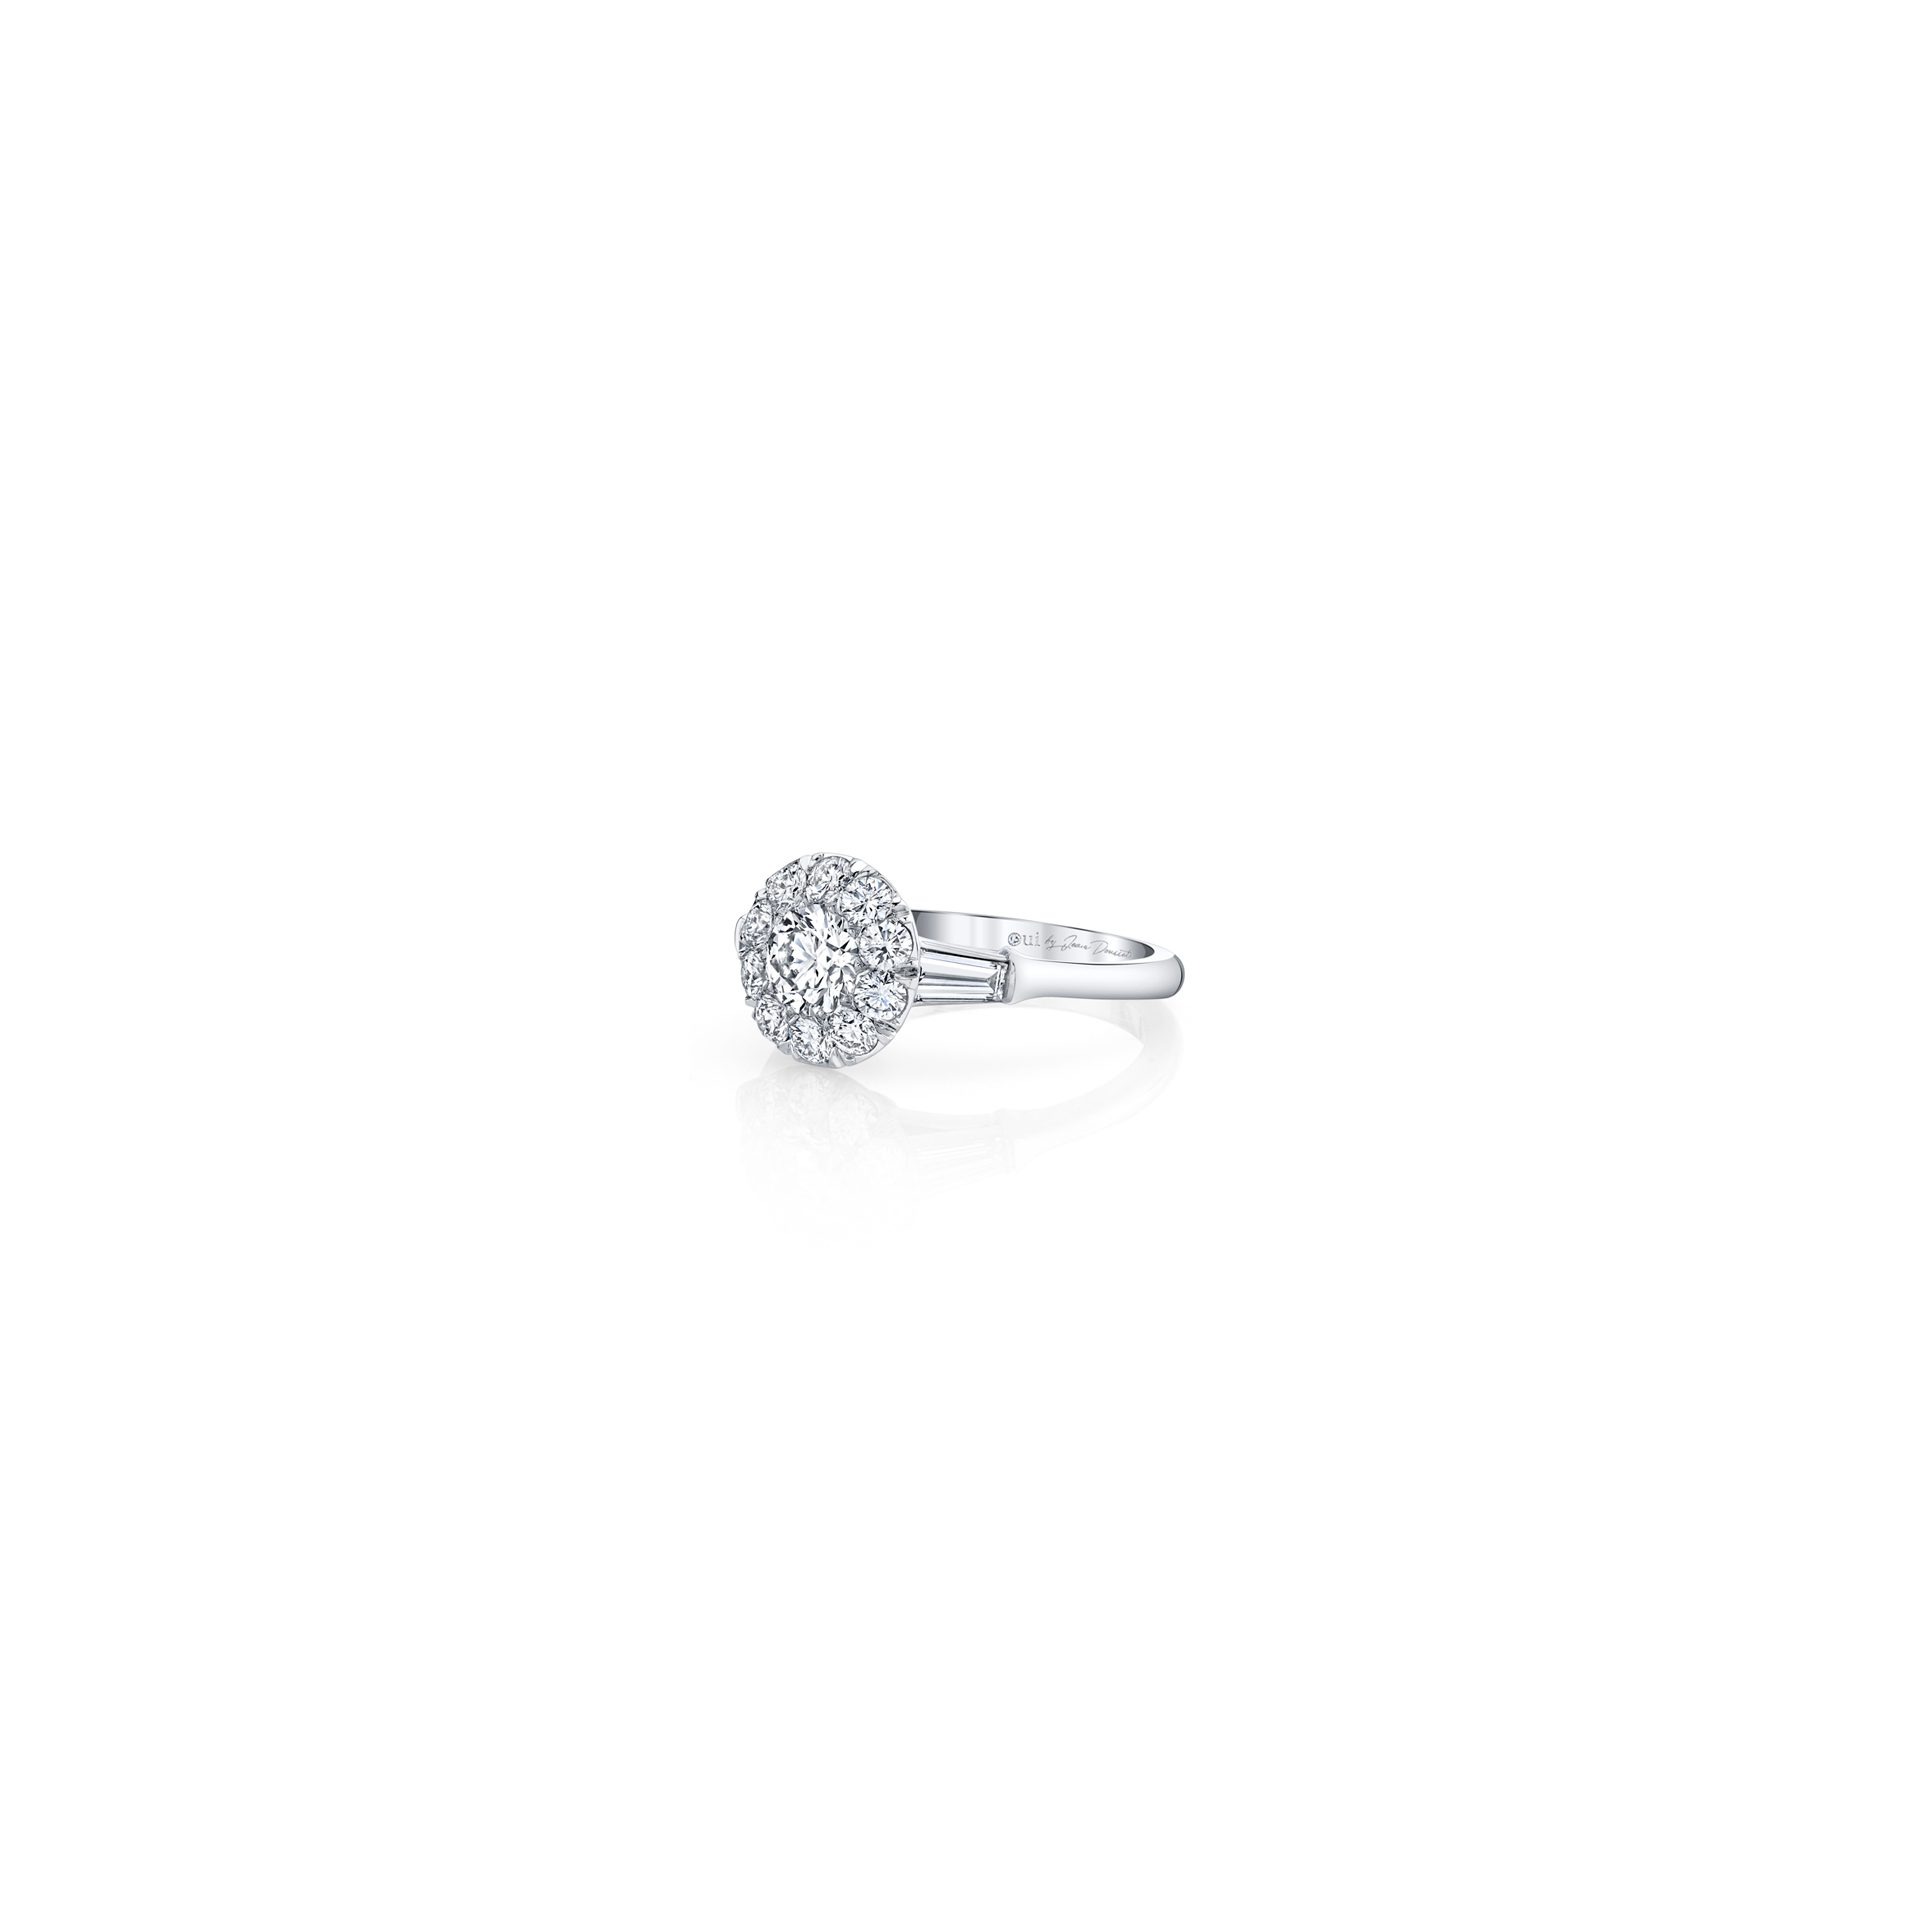 Madeline Round Brilliant Seamless Solitaire™ Three Stone Engagement Ring with tapered baguette diamond side stones in 18k White Gold Side View by Oui by Jean Dousset